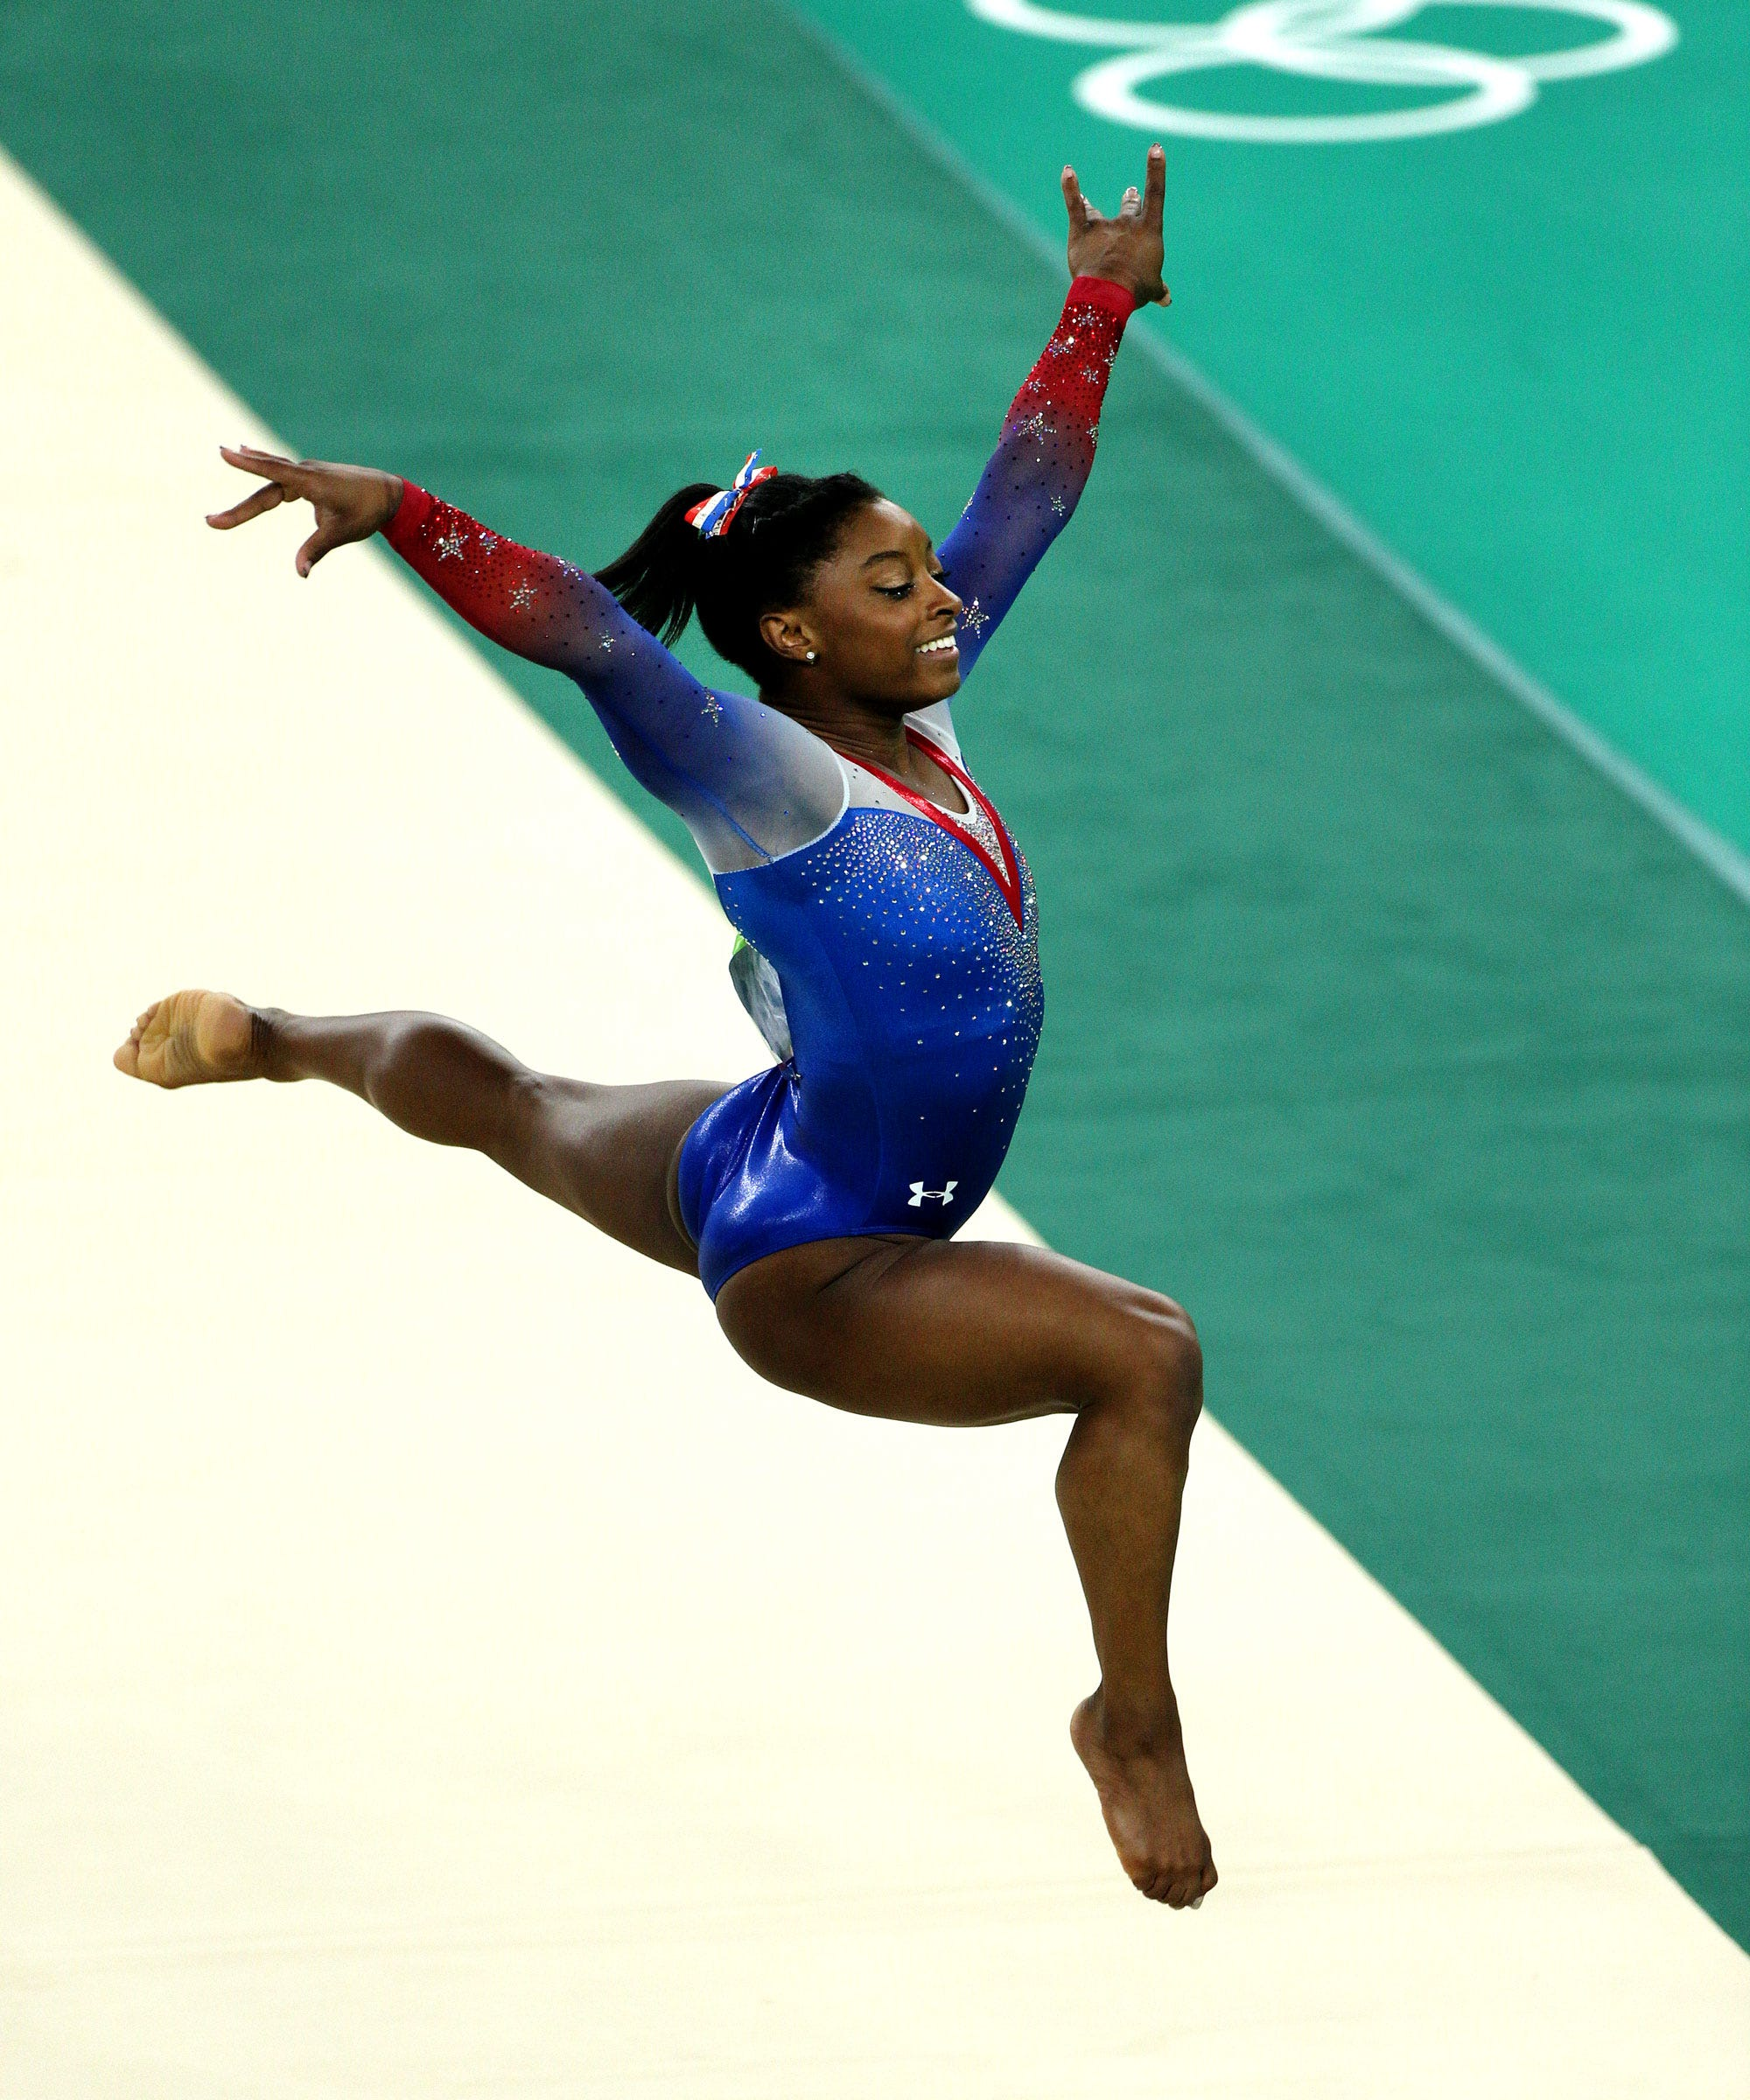 ICYMI: Here's What Simone Biles' Gold-Medal Floor Routine Looked Like